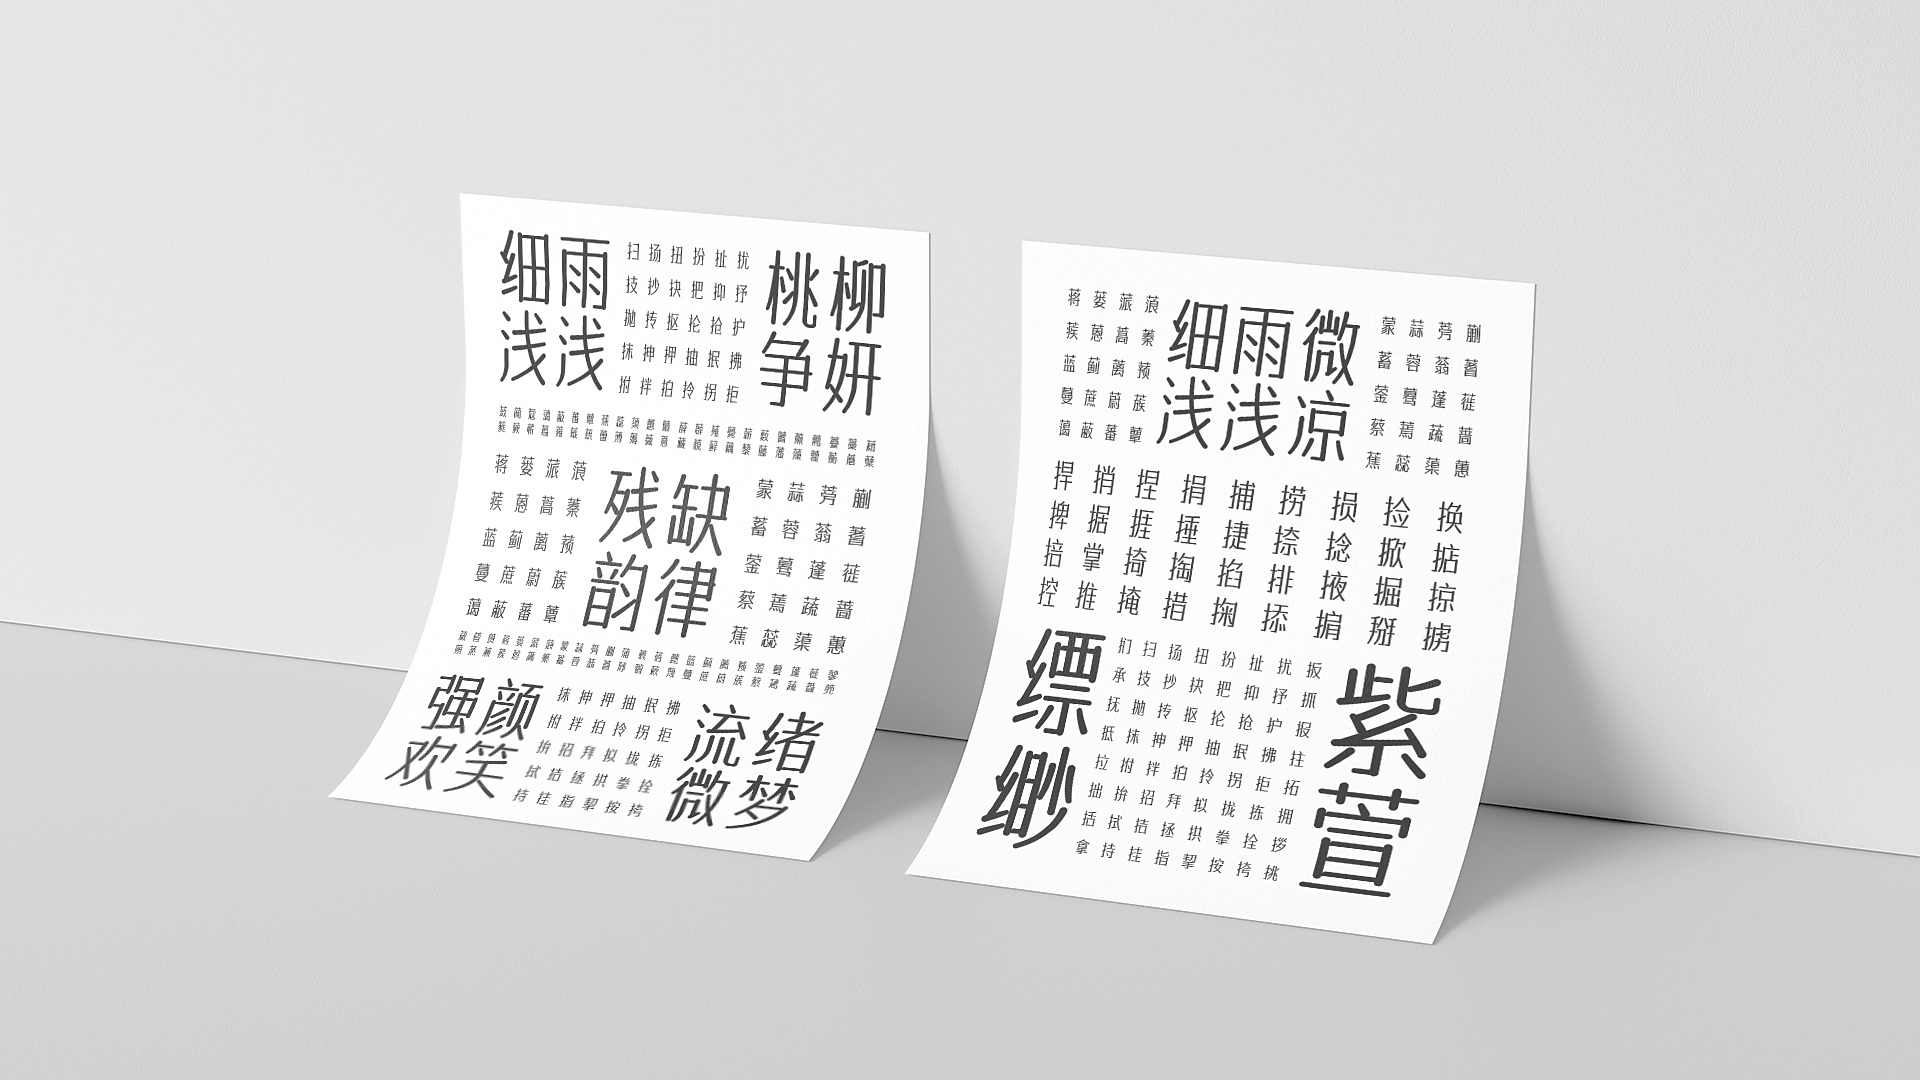 A font with round font design-legendary Nan 'an style